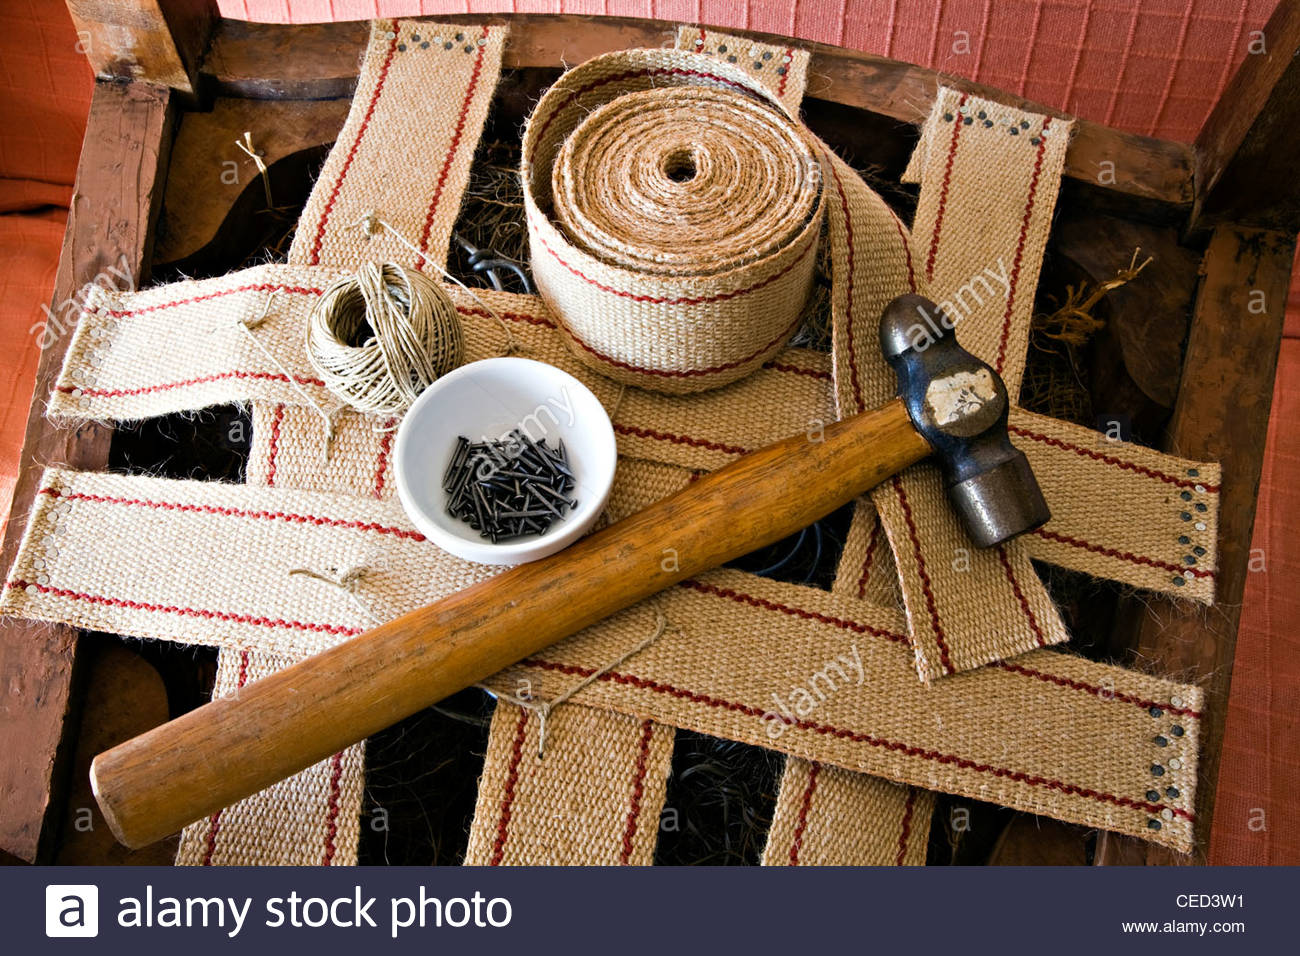 upholstery repair with jute webbing, nails, string and hammer - Stock Image